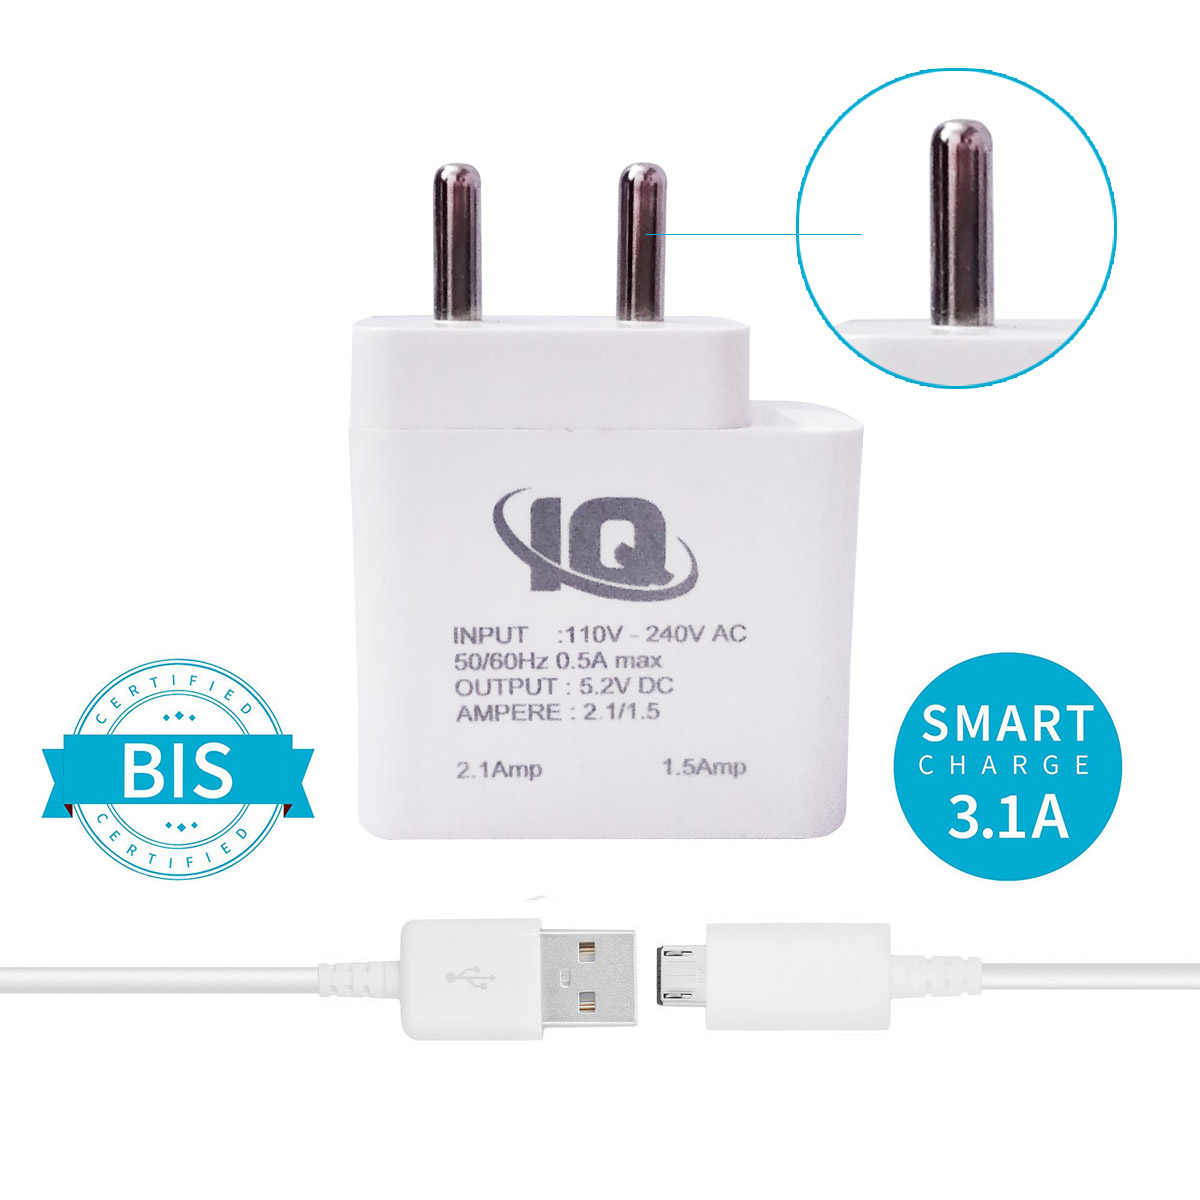 sublicart2 Redmi 4a Supported Wall Charger Made In India,travel Charger ,mobile Charger,dual Port Usb Plug Wall Charger Adapter With 1 Meter Micro Usb Cable By